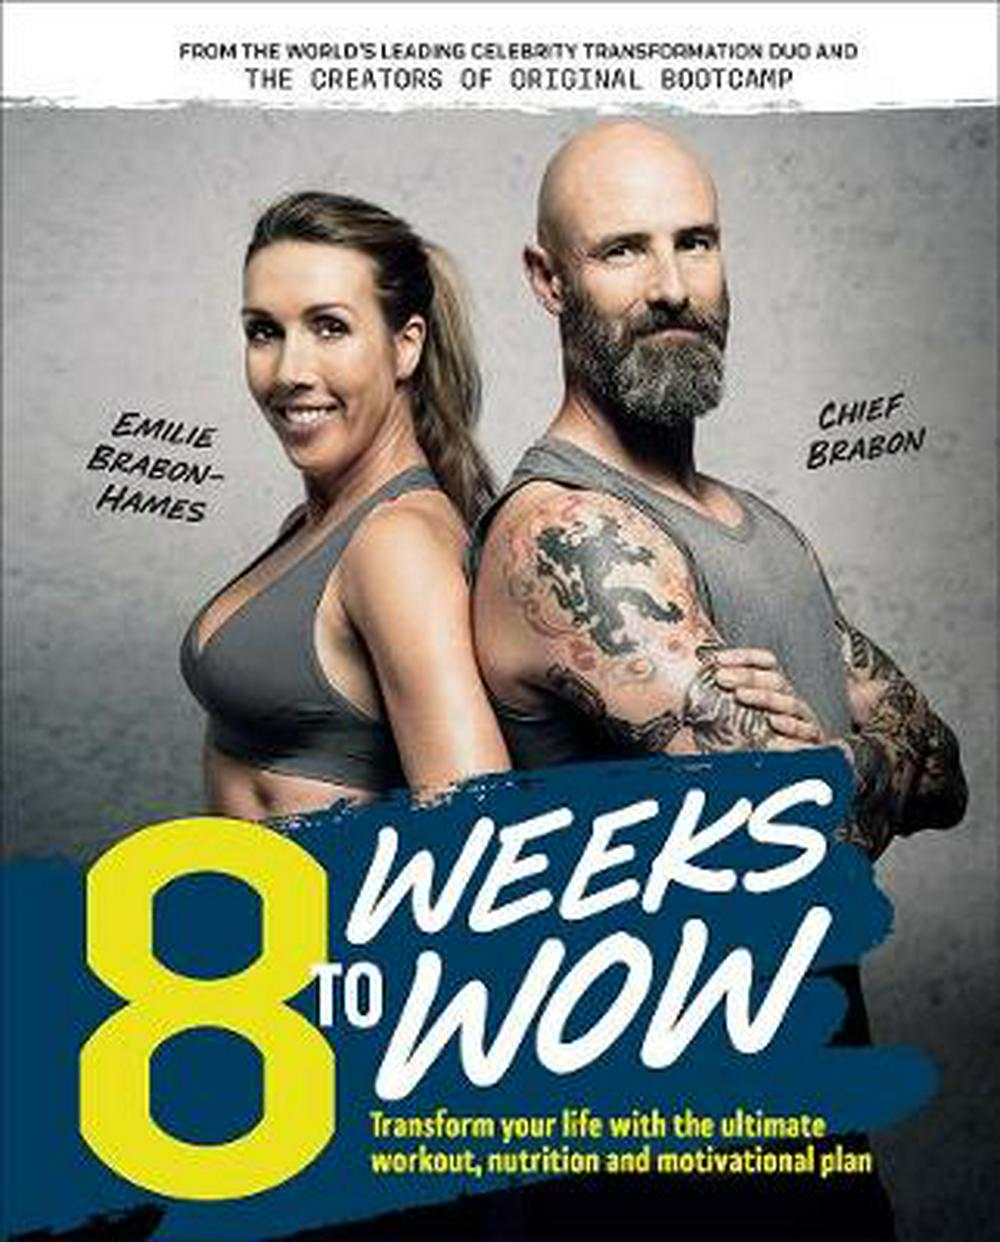 8 Weeks To WowTransform your life with the ultimate workout, ... by Emilie Brabon-Hames,Chief Brabon, ISBN: 9781760523732